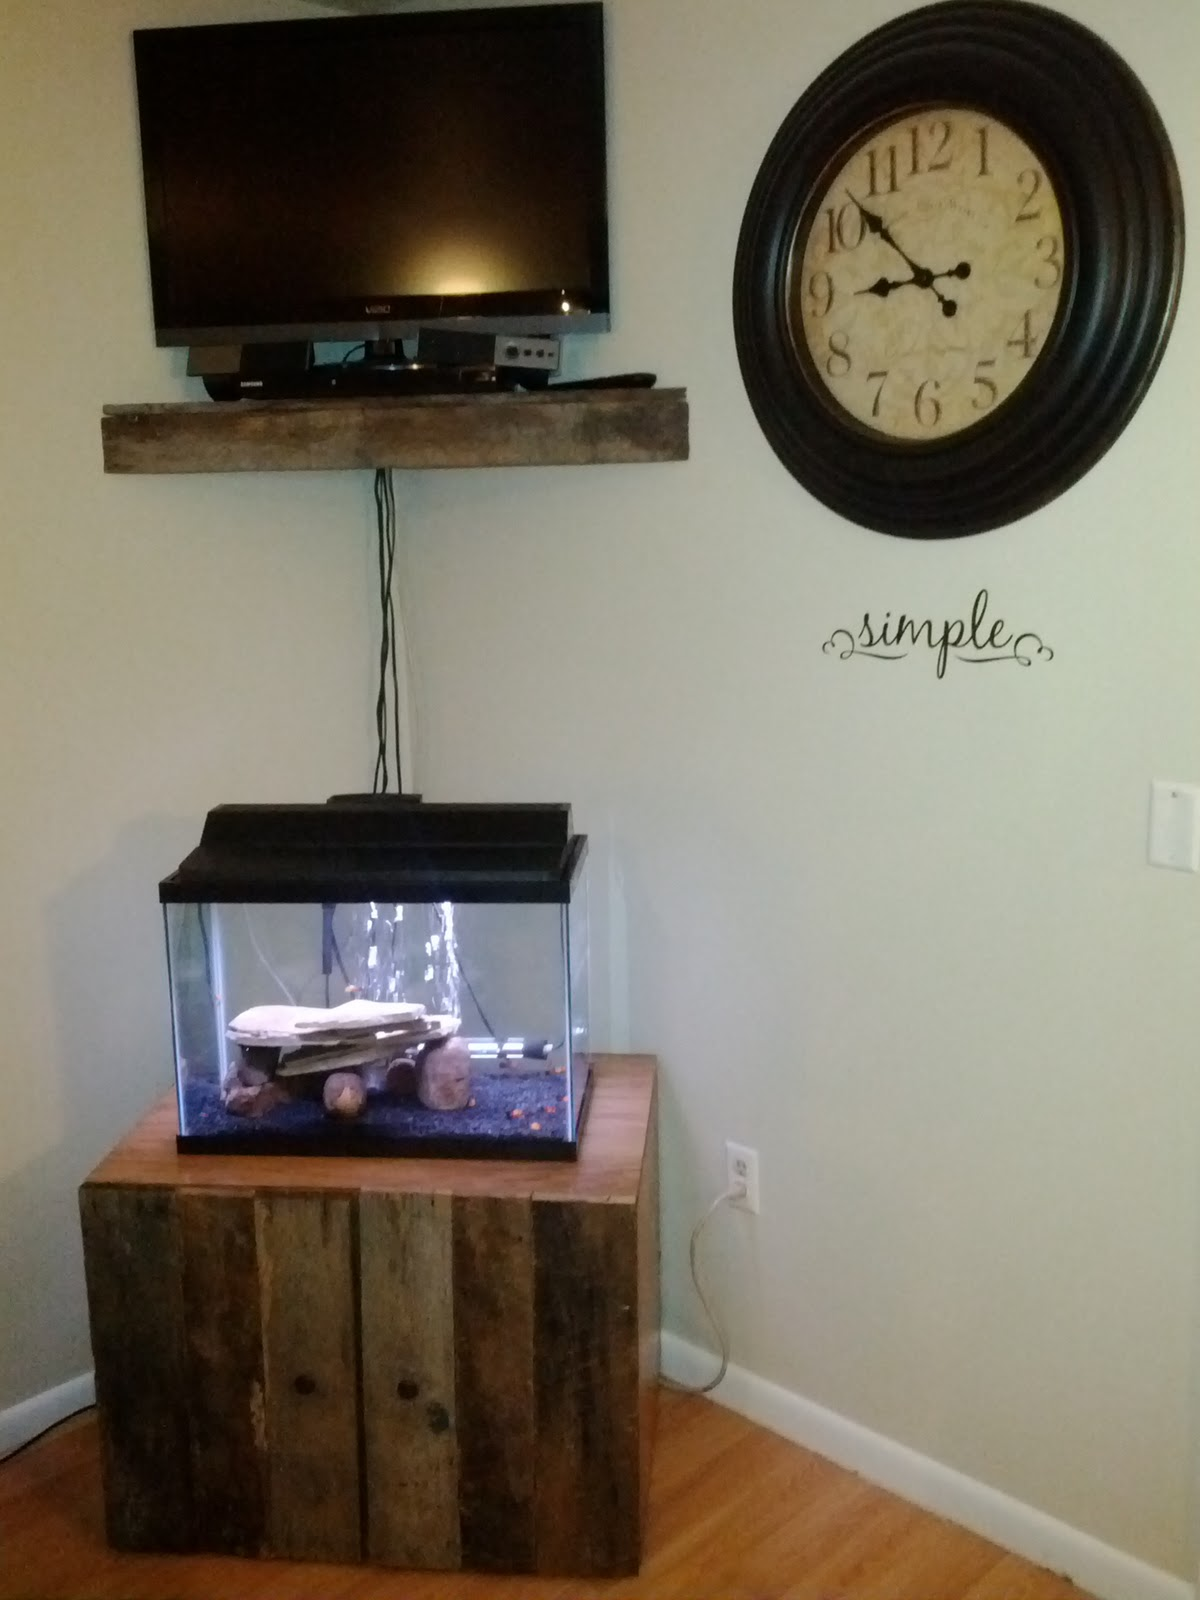 Fish tank tv stand - Hubs Next Project Was This Fish Tank Stand And Tv Shelf He Turned His Old Window Box Seat Into A Stand And Storage For The Fish Tank